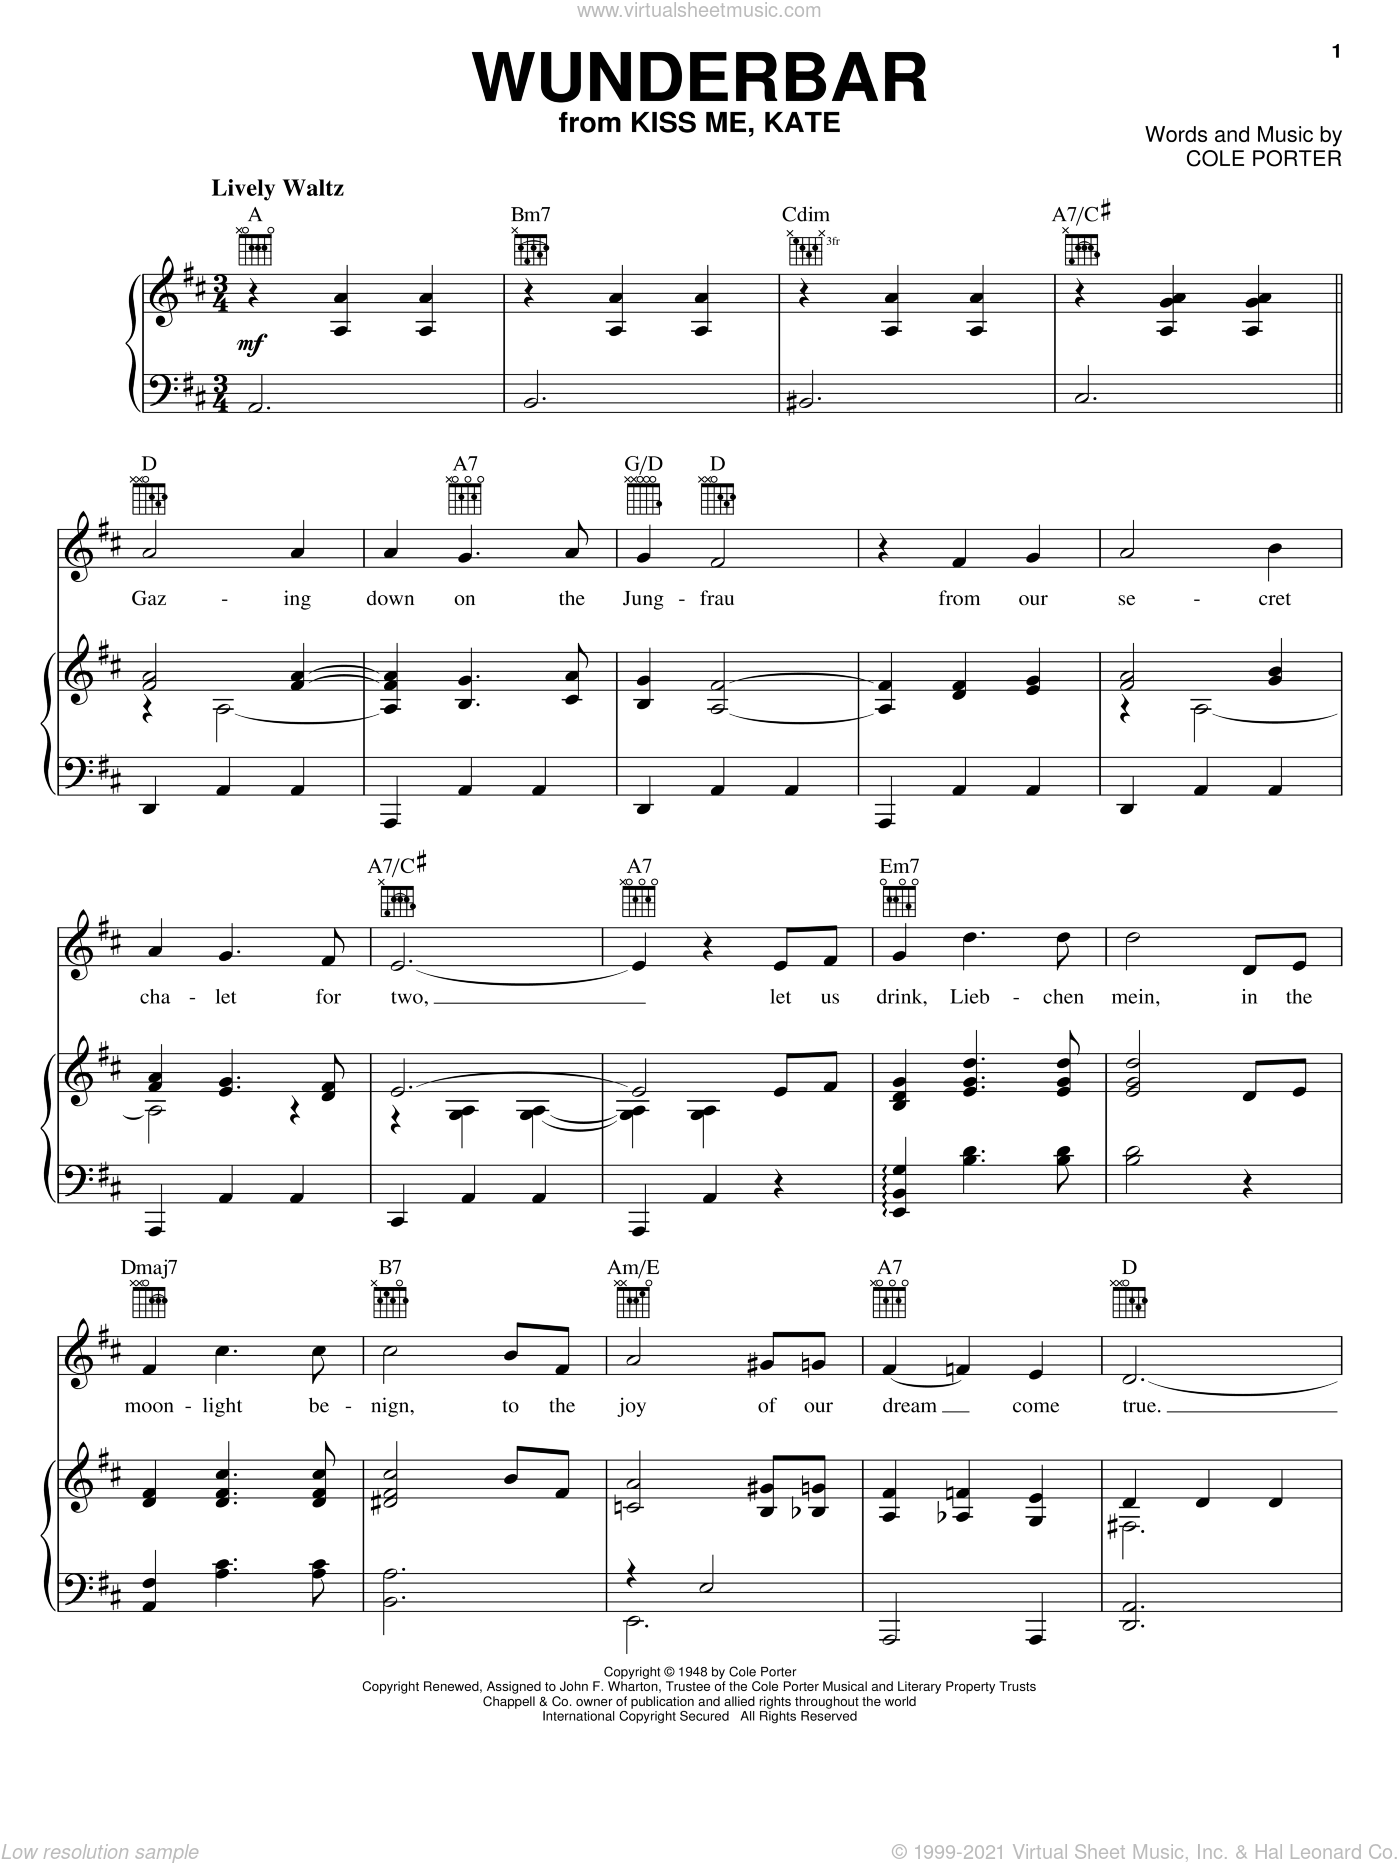 Wunderbar (from Kiss Me, Kate) sheet music for voice, piano or guitar by Cole Porter and Kiss Me, Kate (Musical), intermediate skill level